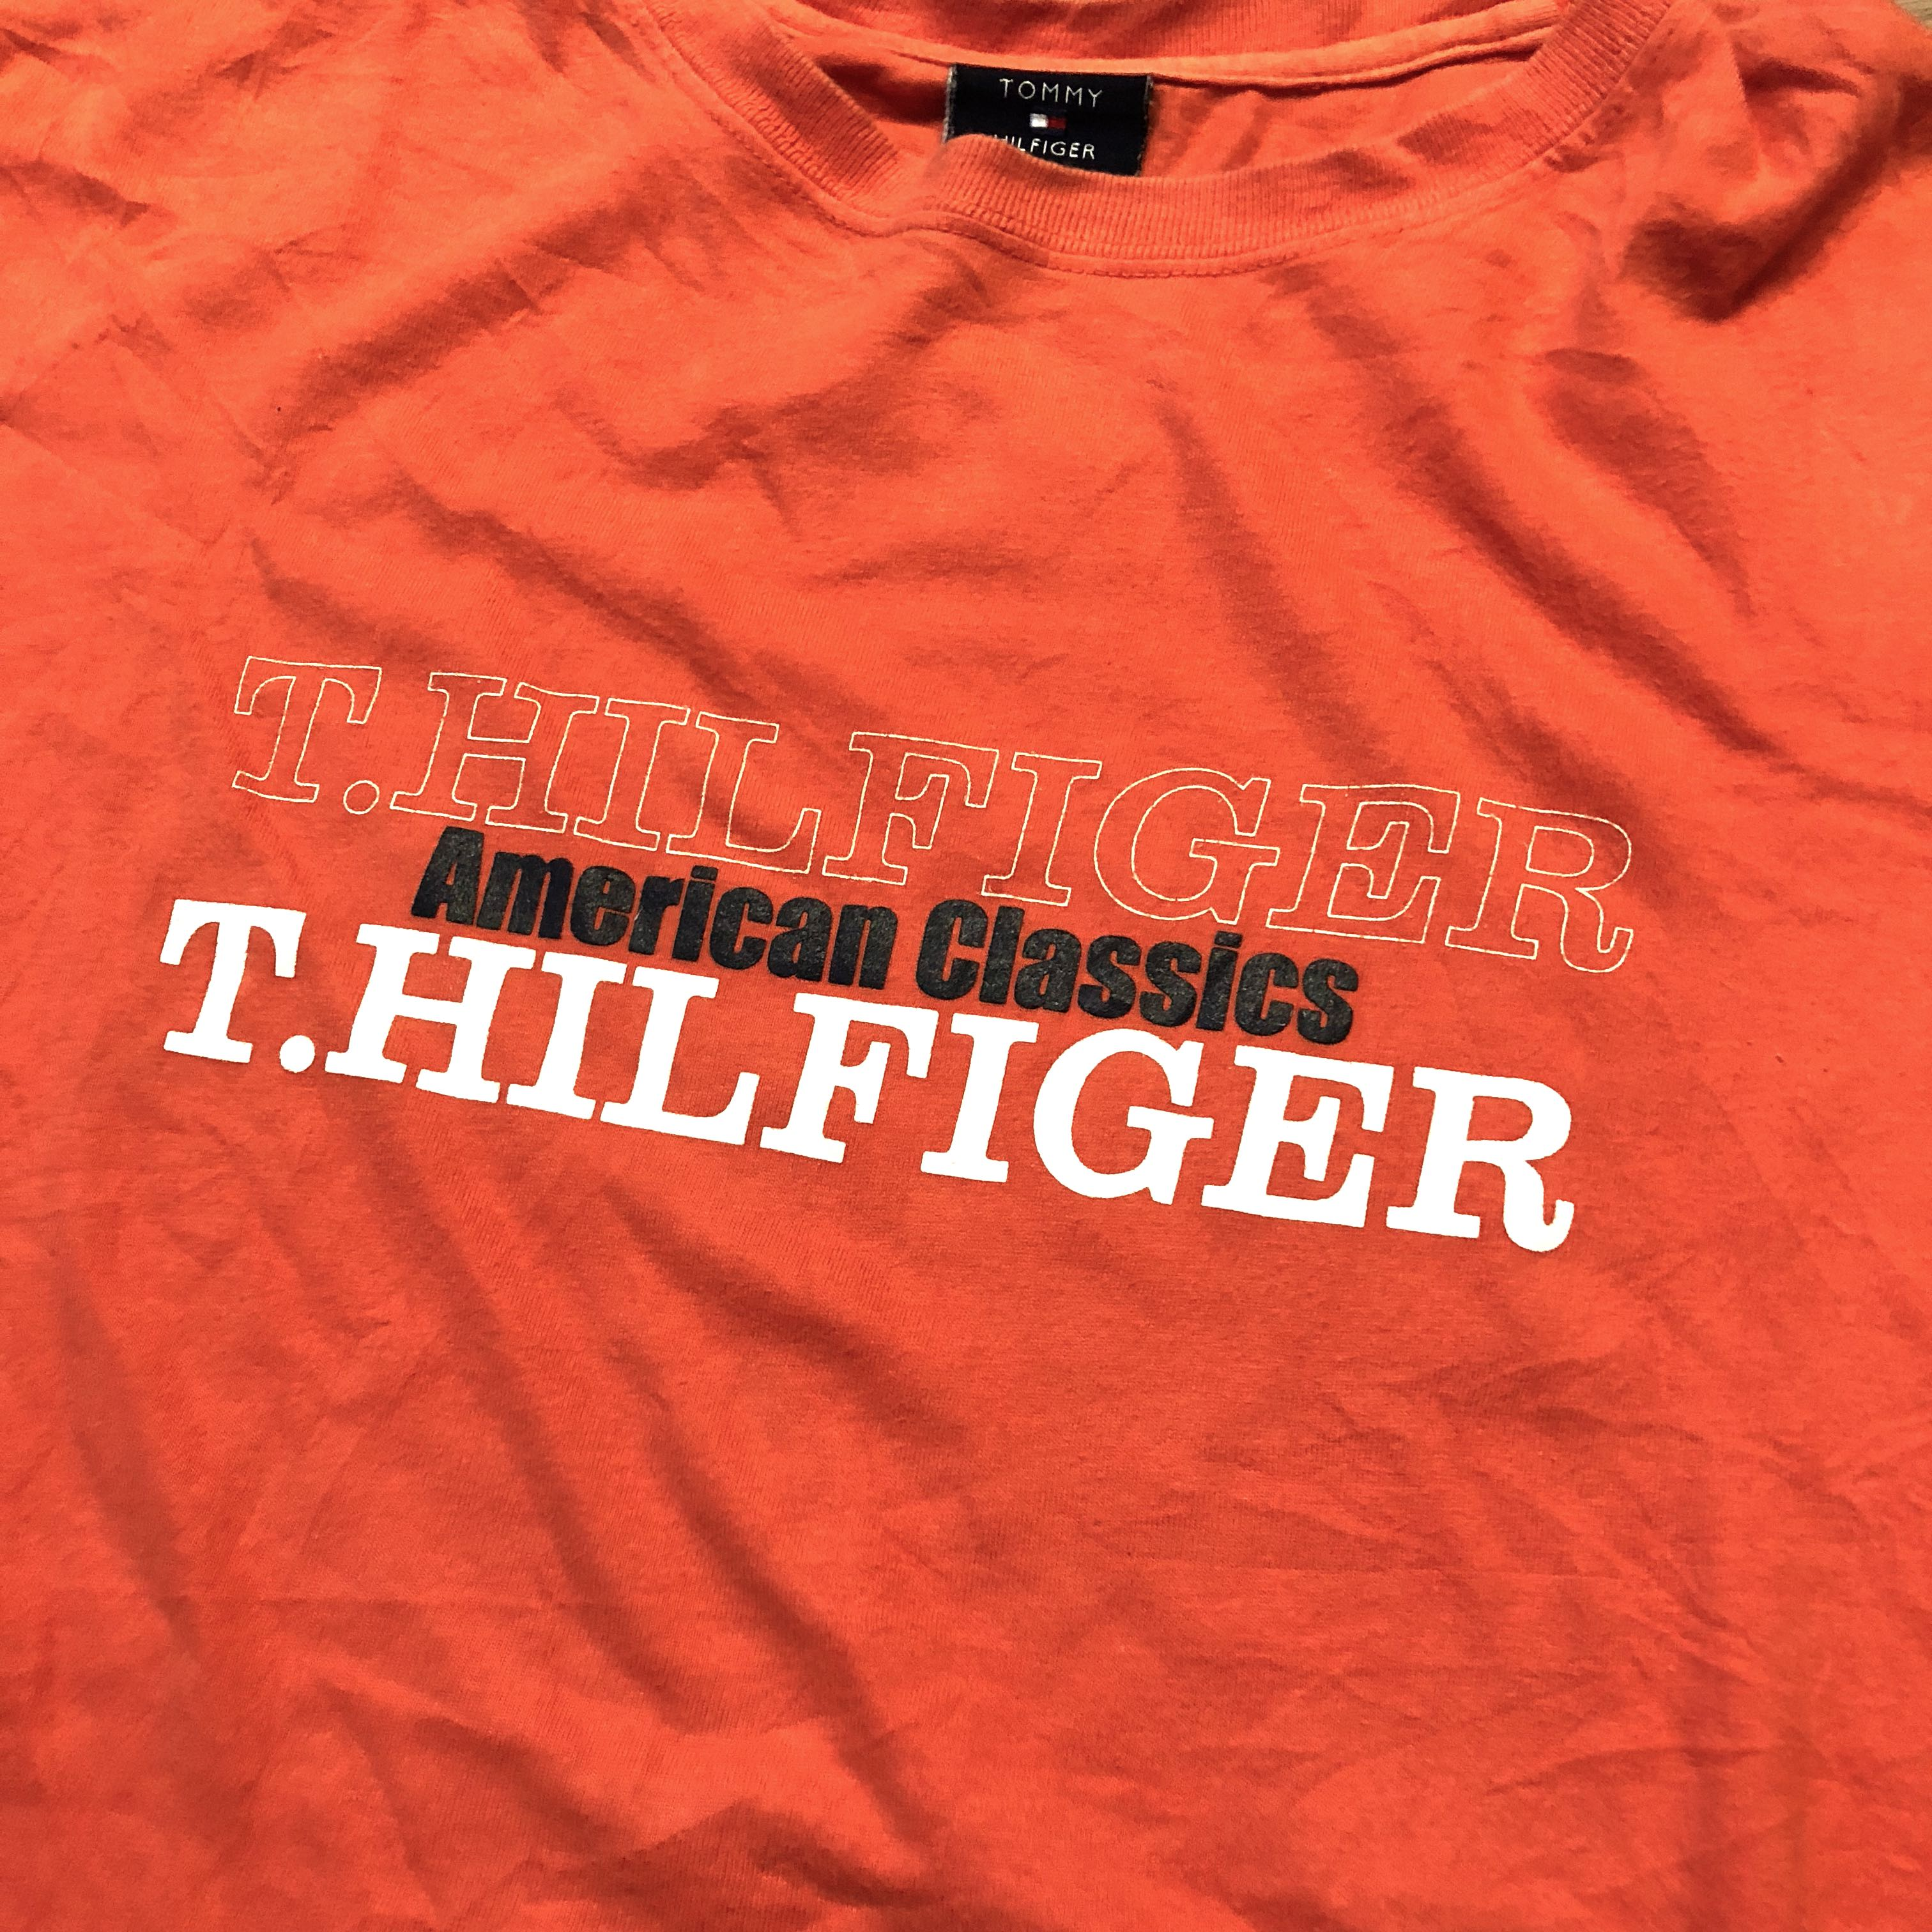 77a30ade2 Vintage Tommy Hilfiger Tshirt Size M, Men's Fashion, Clothes, Tops ...